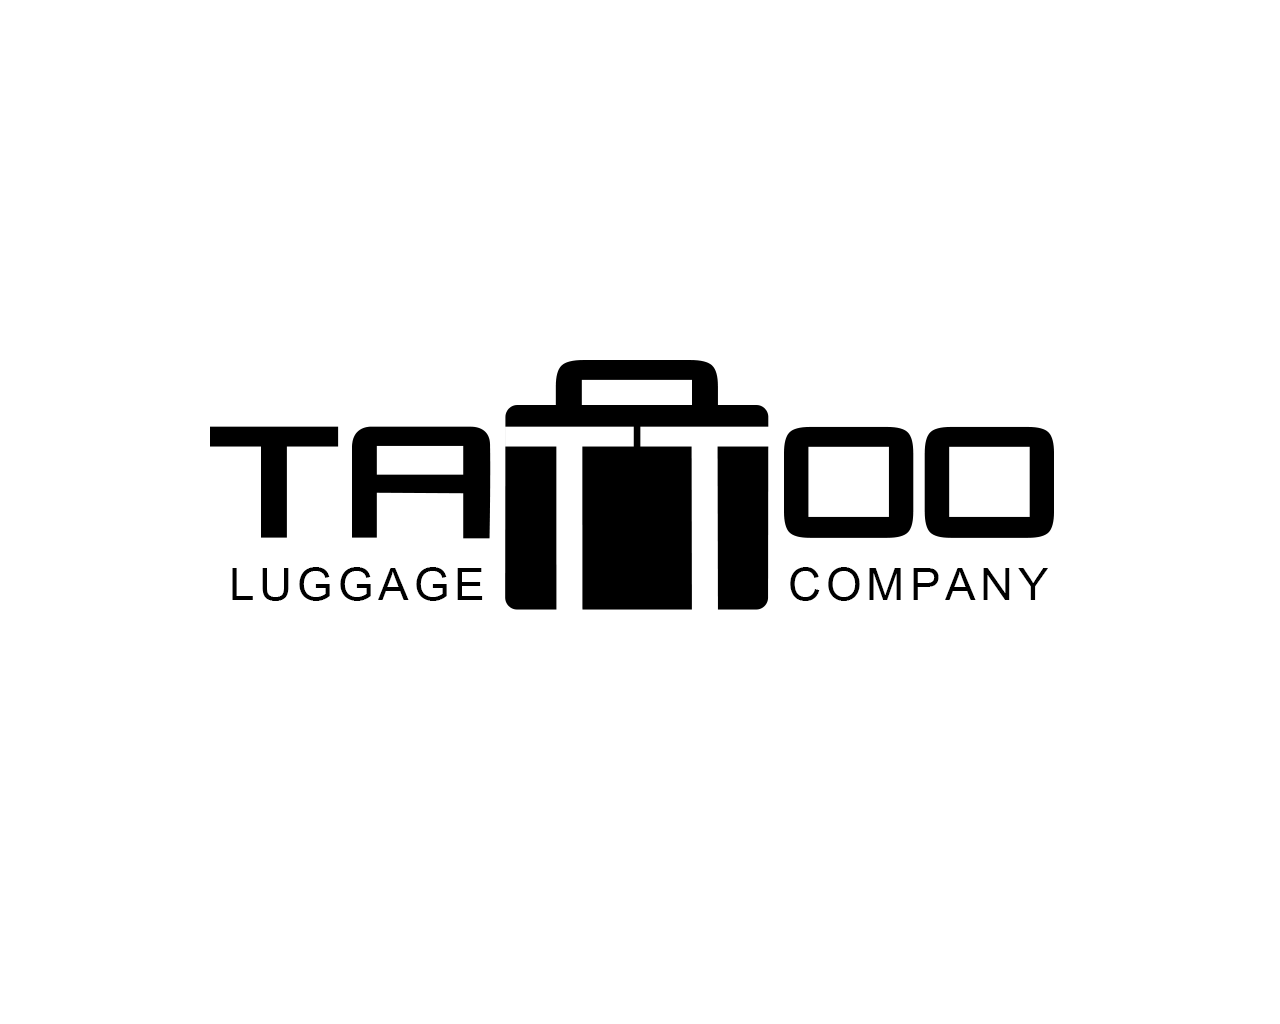 Logo Design by philipprince - Entry No. 70 in the Logo Design Contest Artistic Logo Design for Tattoo Luggage Company.